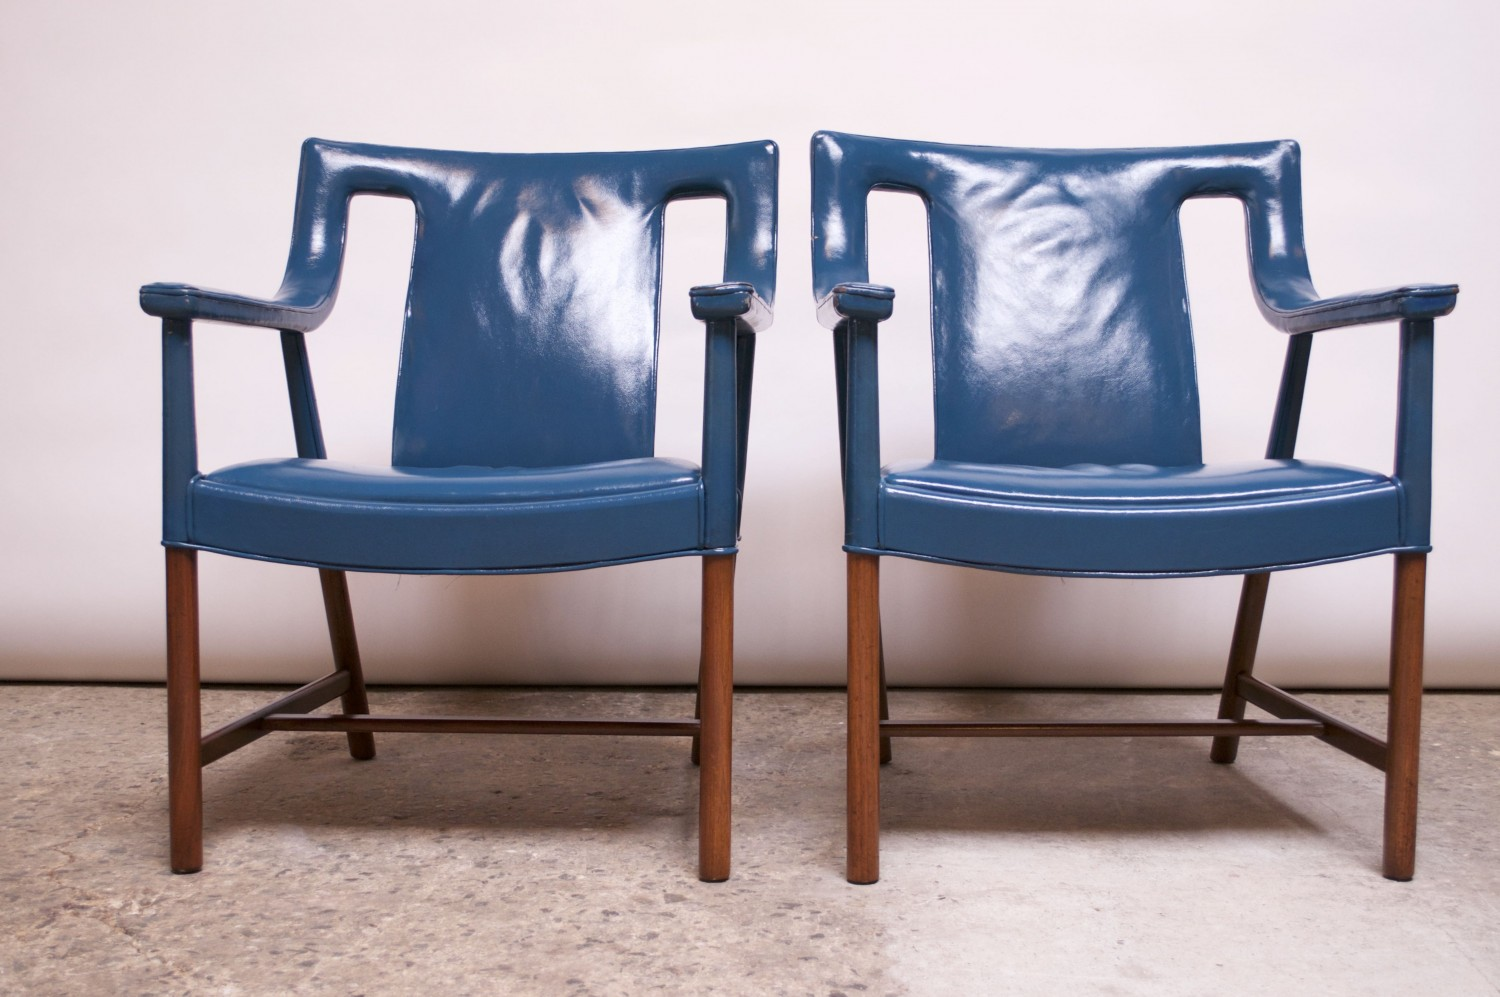 Phenomenal Pair Of Danish Blue Leather Armchairs By Ejner Larsen And Aksel Bender Madsen Pabps2019 Chair Design Images Pabps2019Com